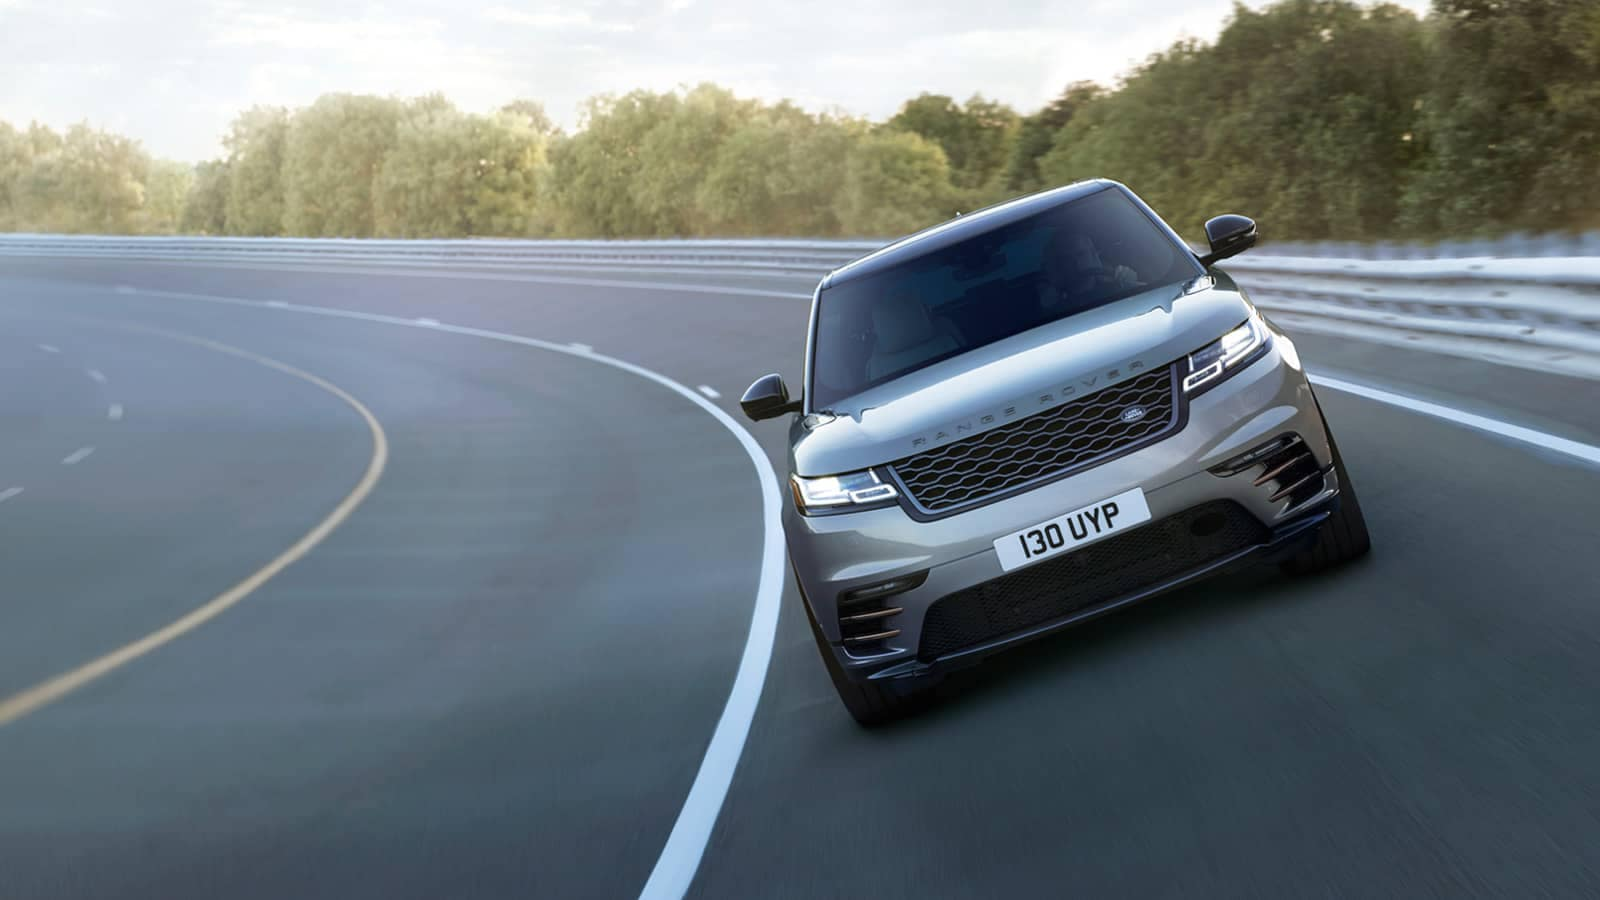 2019 Land Rover Range Rover Velar performance